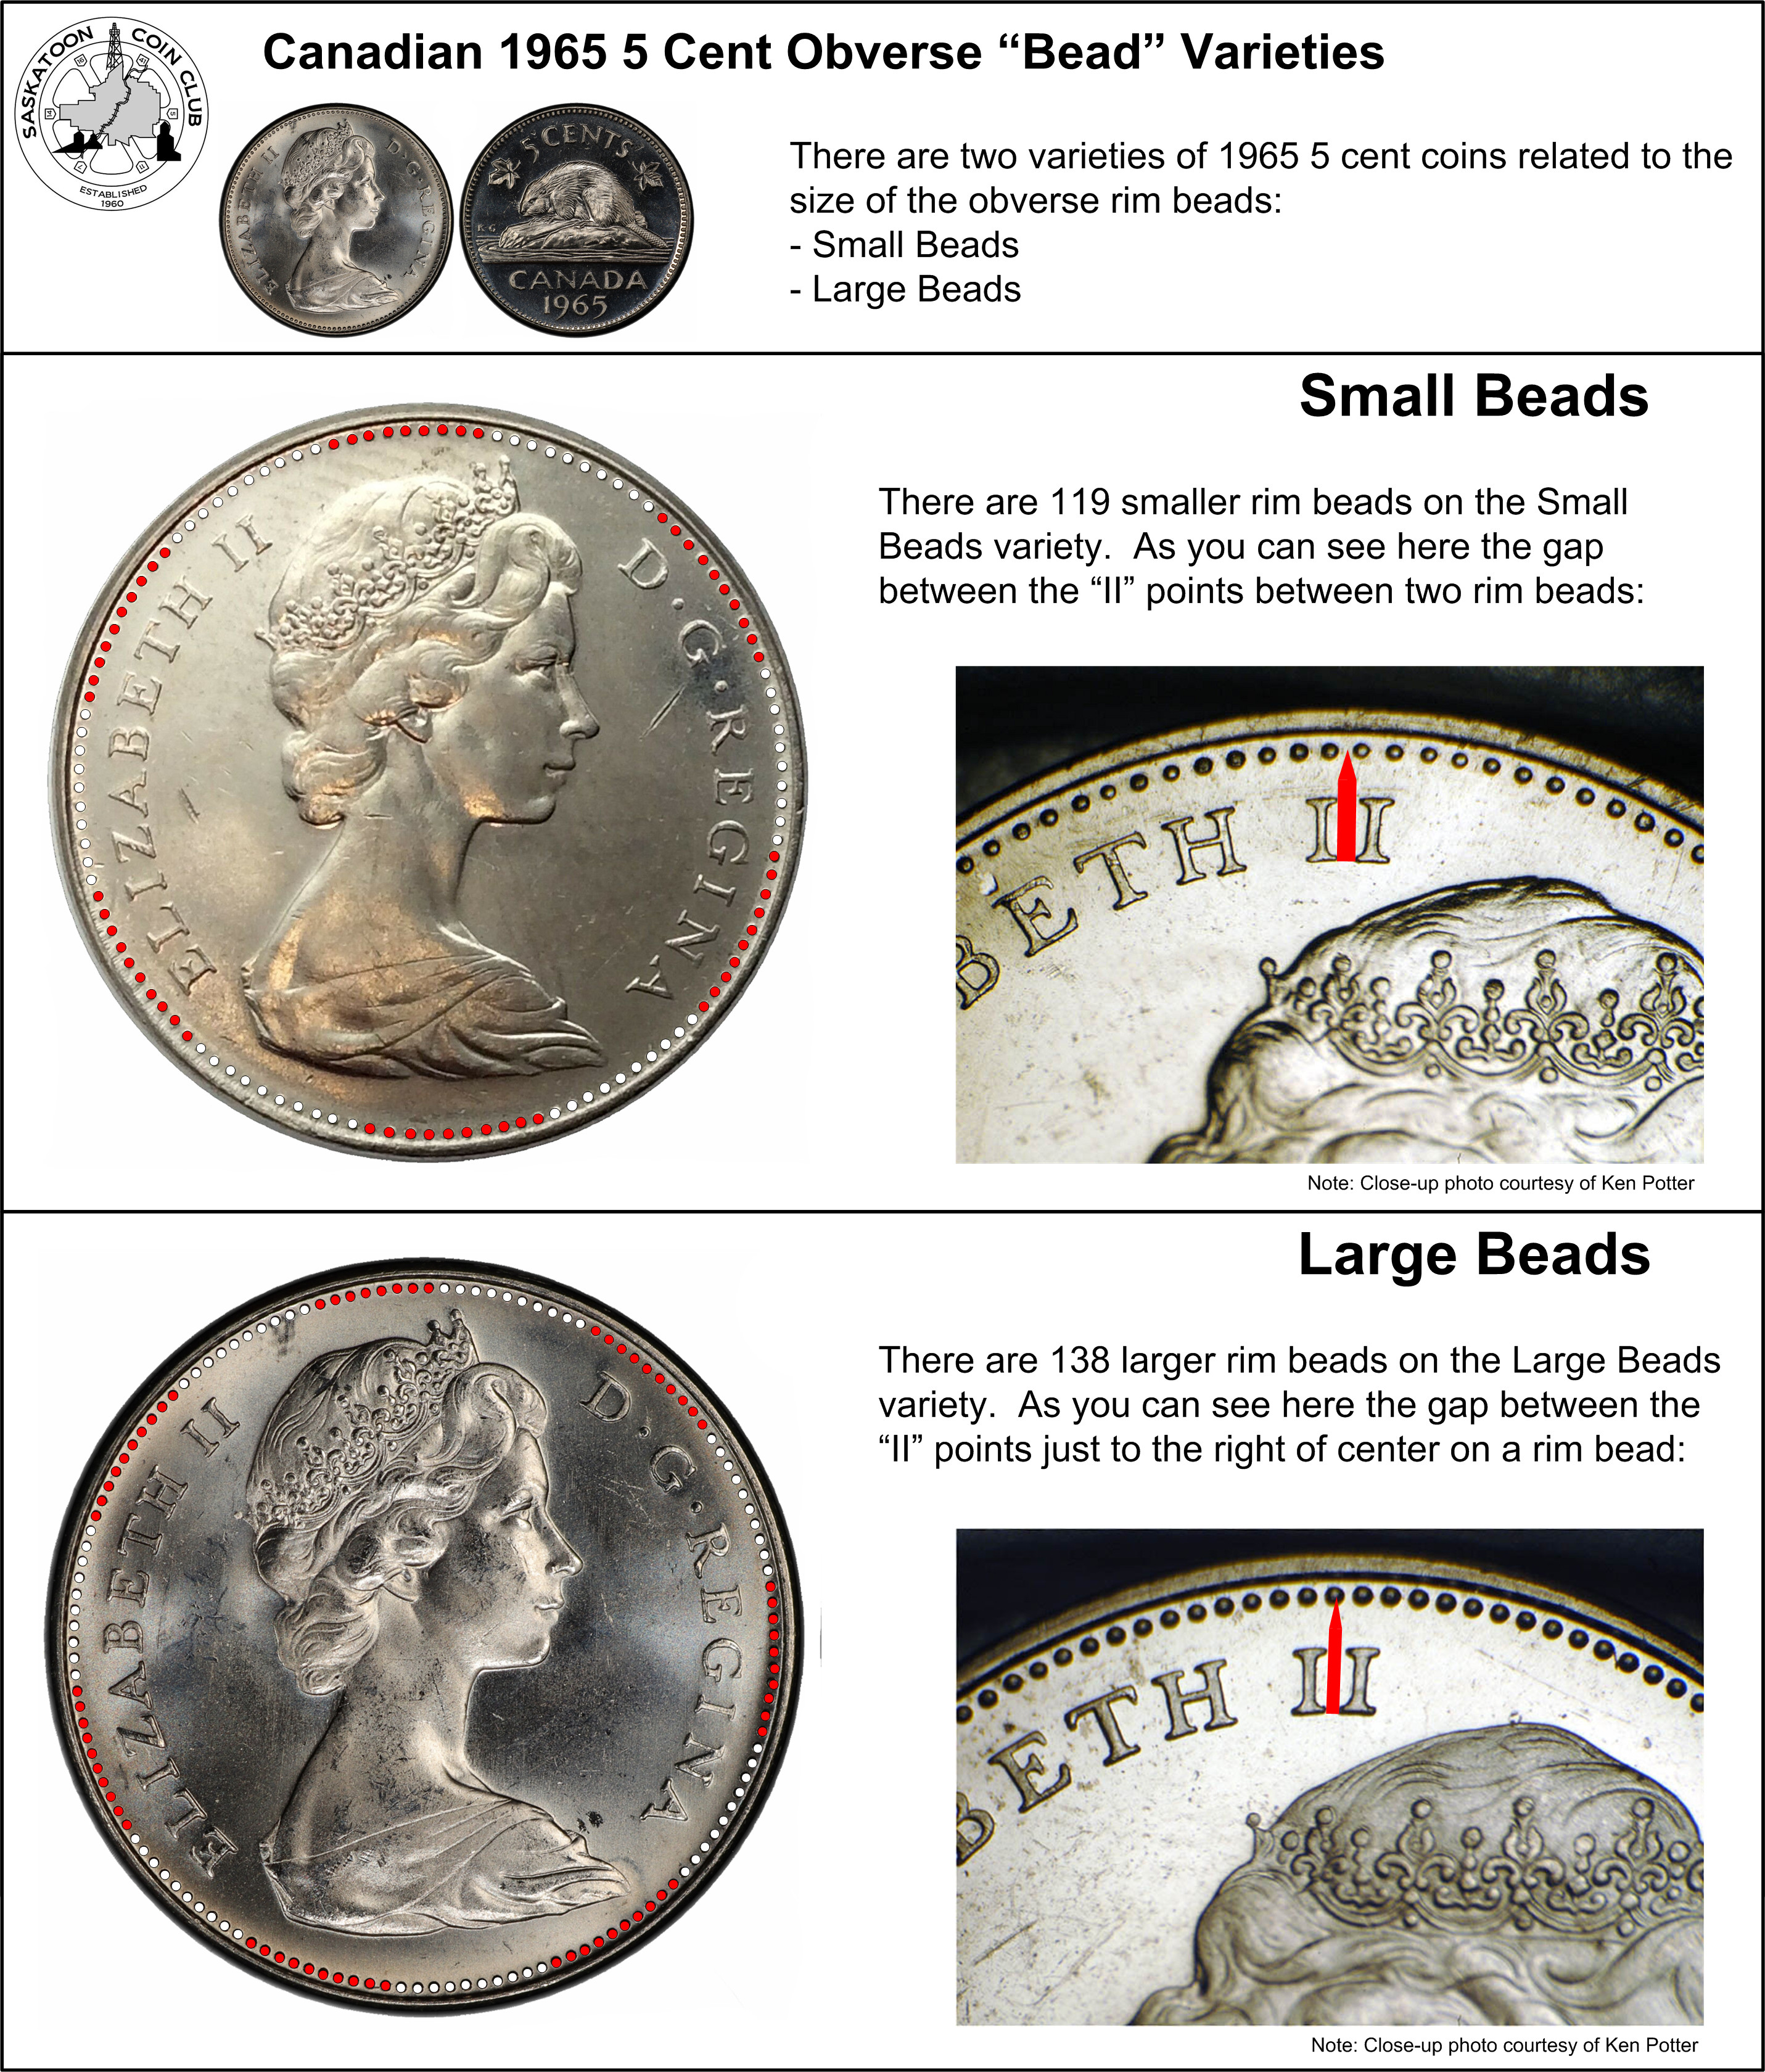 Canadian 5 Cent Coin Major Varieties